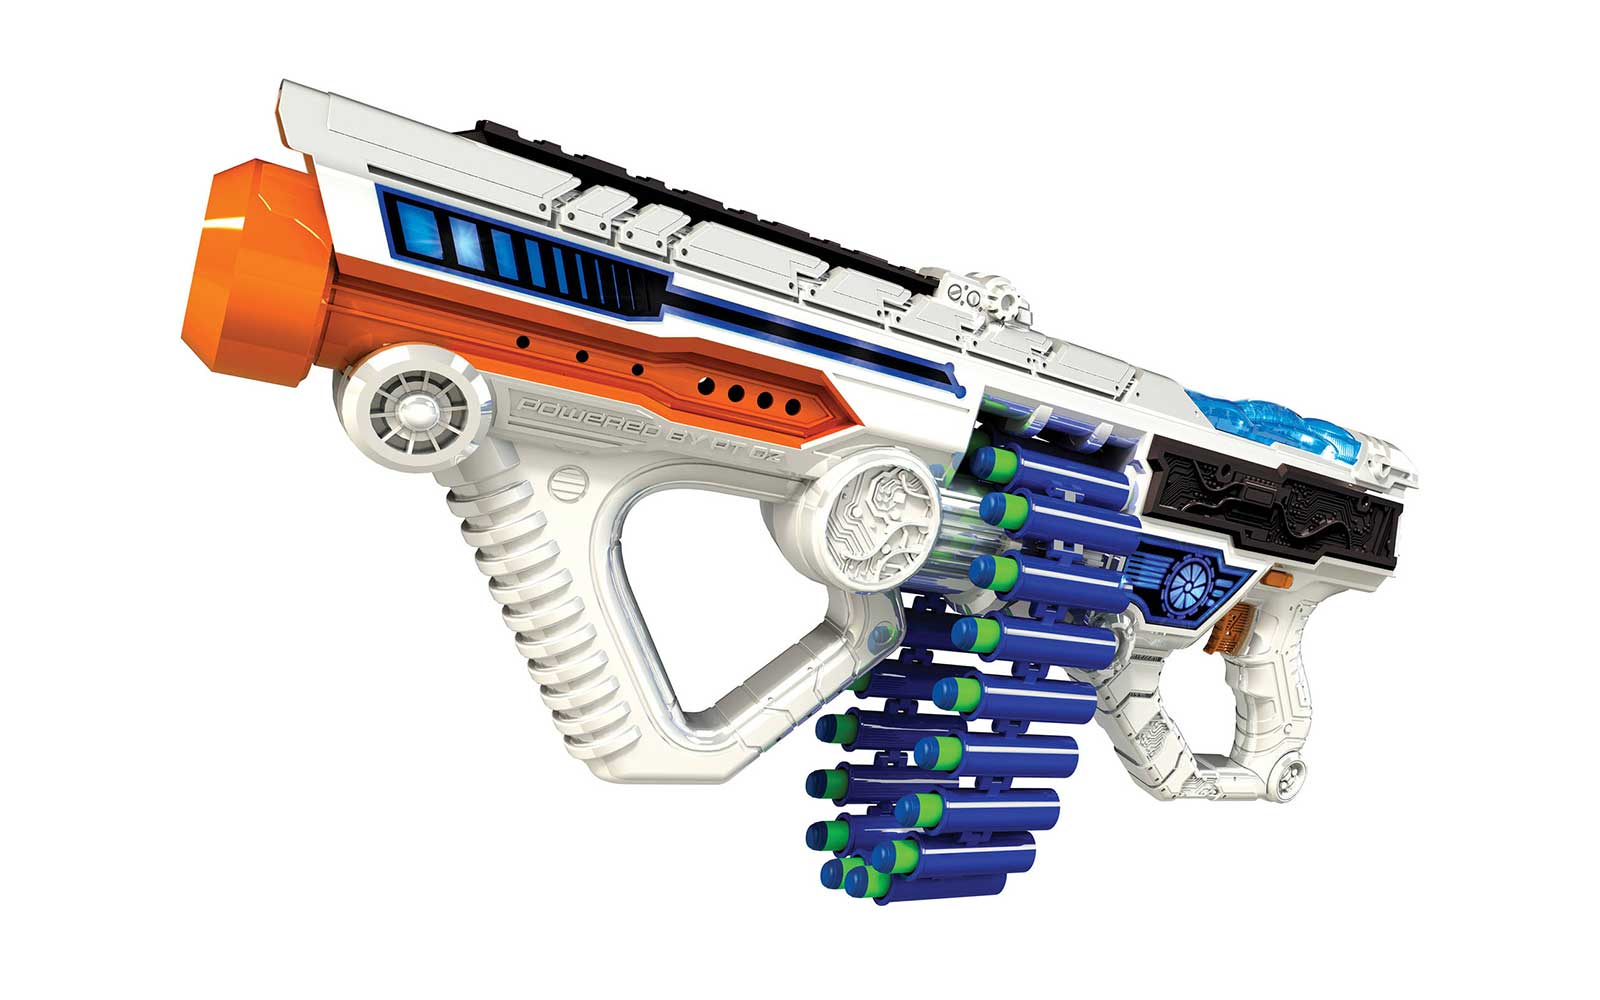 Adventure Force Light Blaster Toy